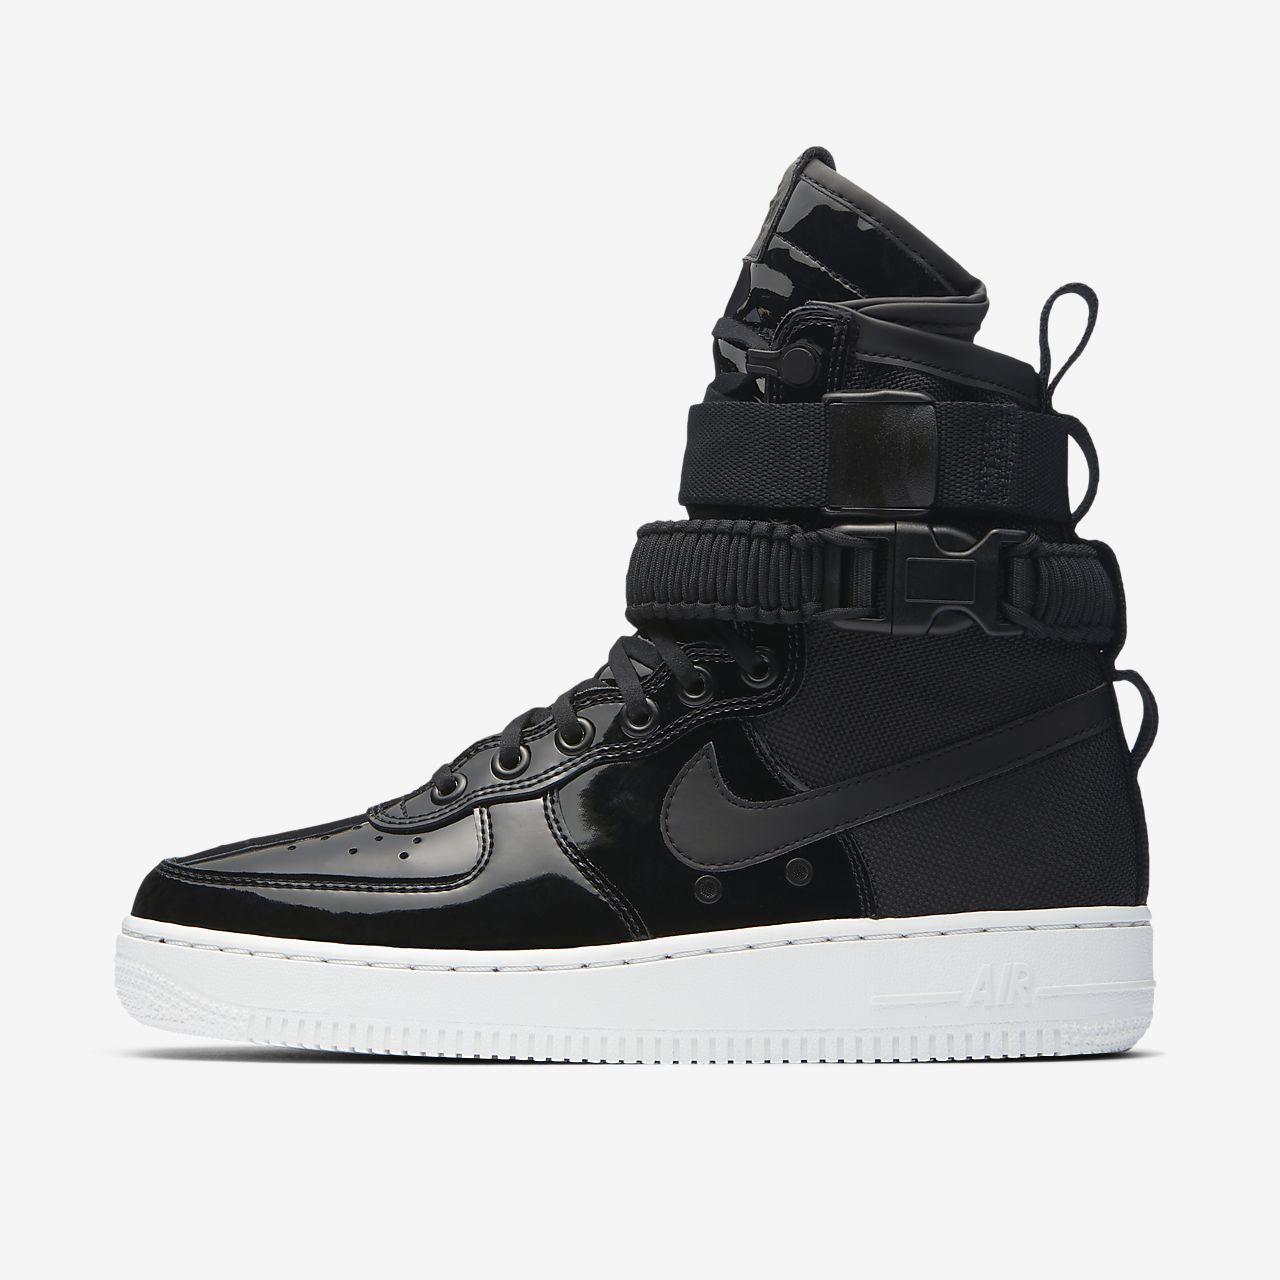 nike air force 1 high 07 nba men's shoe nz